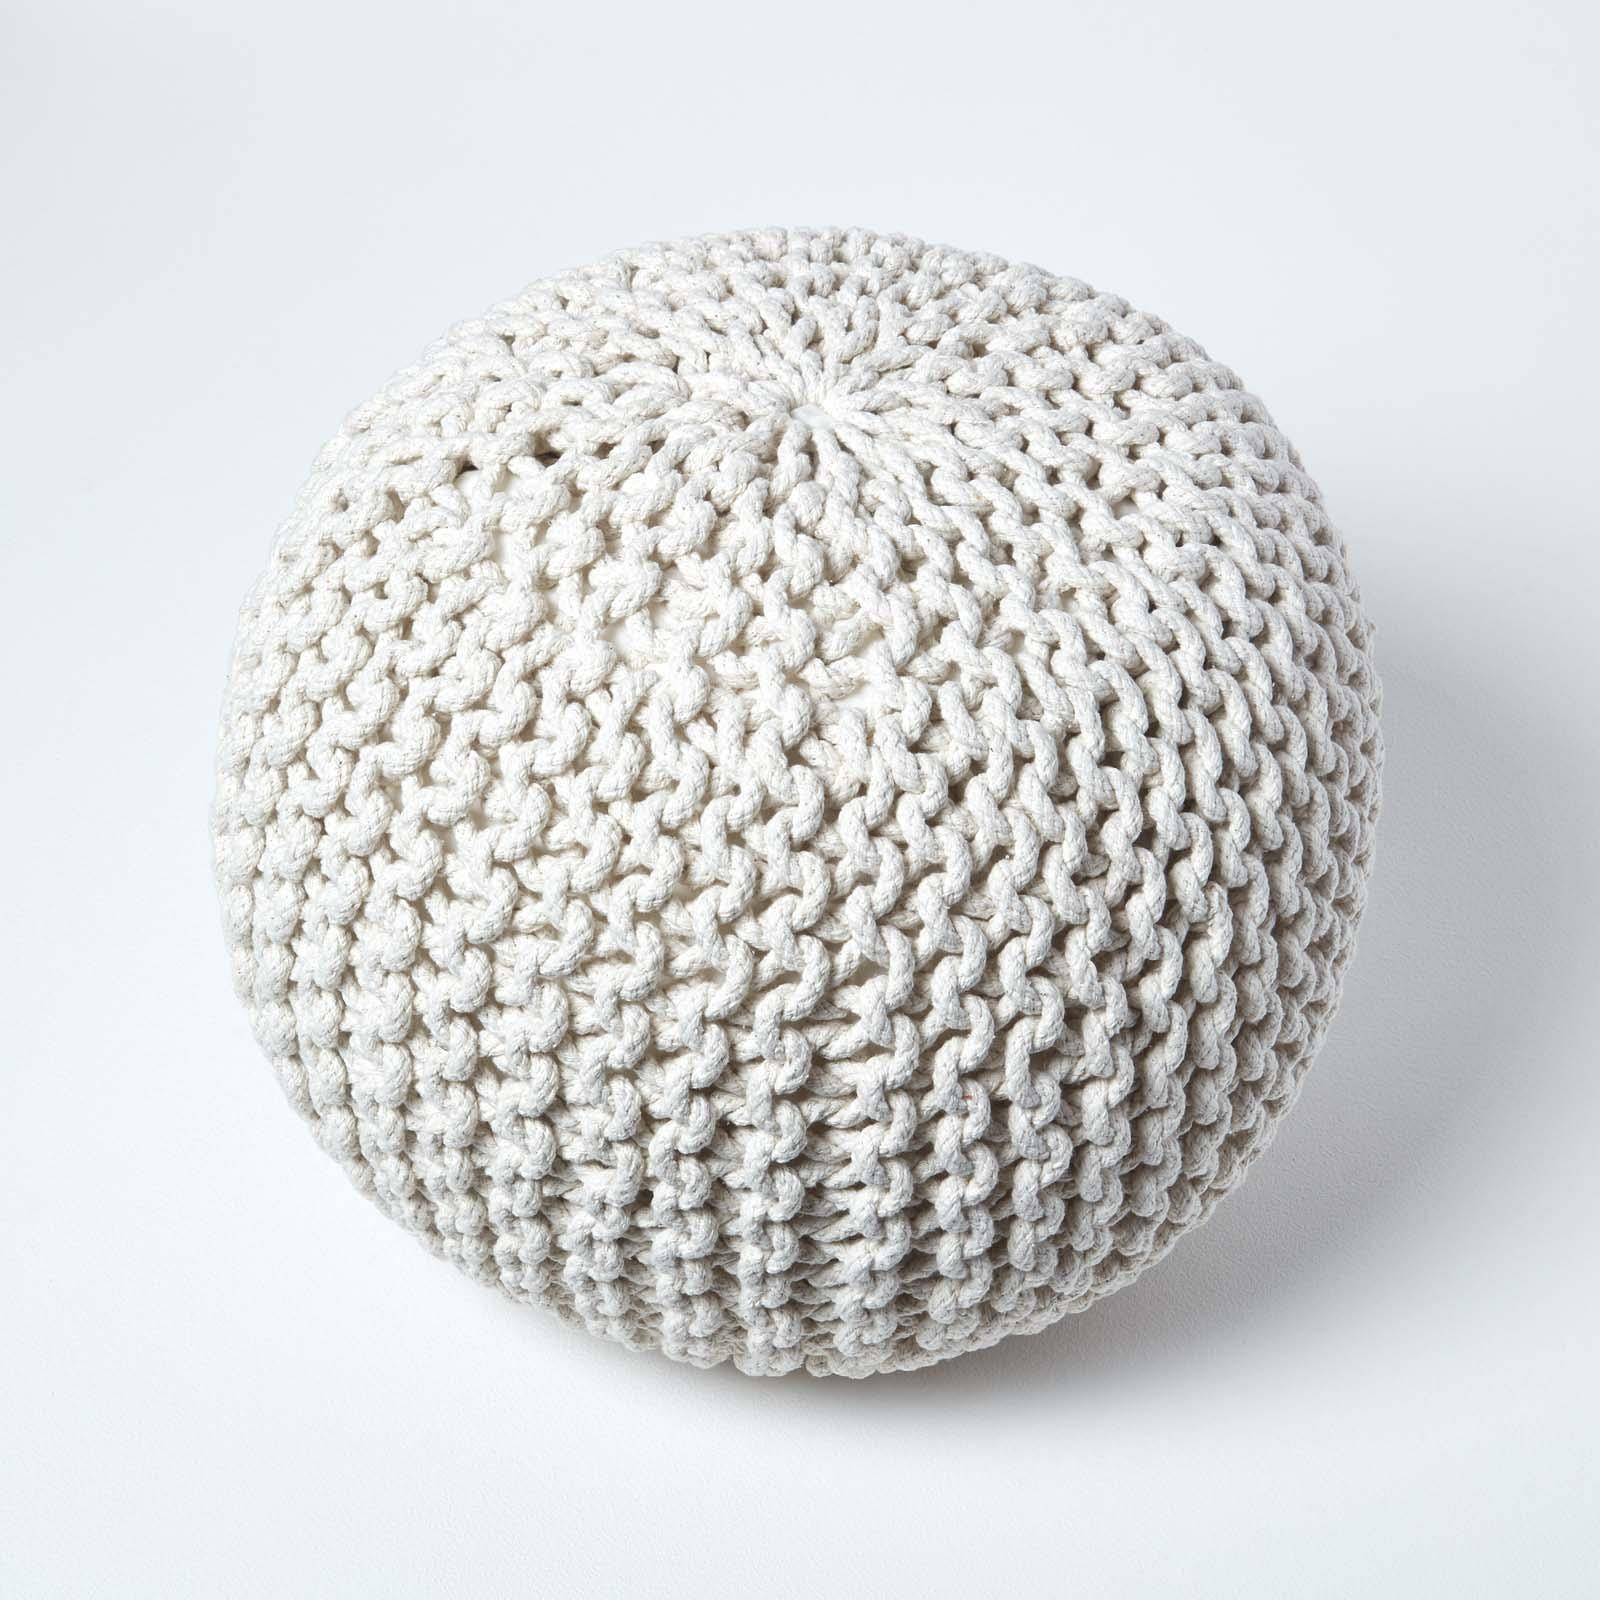 Hand-Knitted-100-Cotton-Pouffes-Round-Sphere-Or-Cube-Square-Chunky-Footstools thumbnail 99